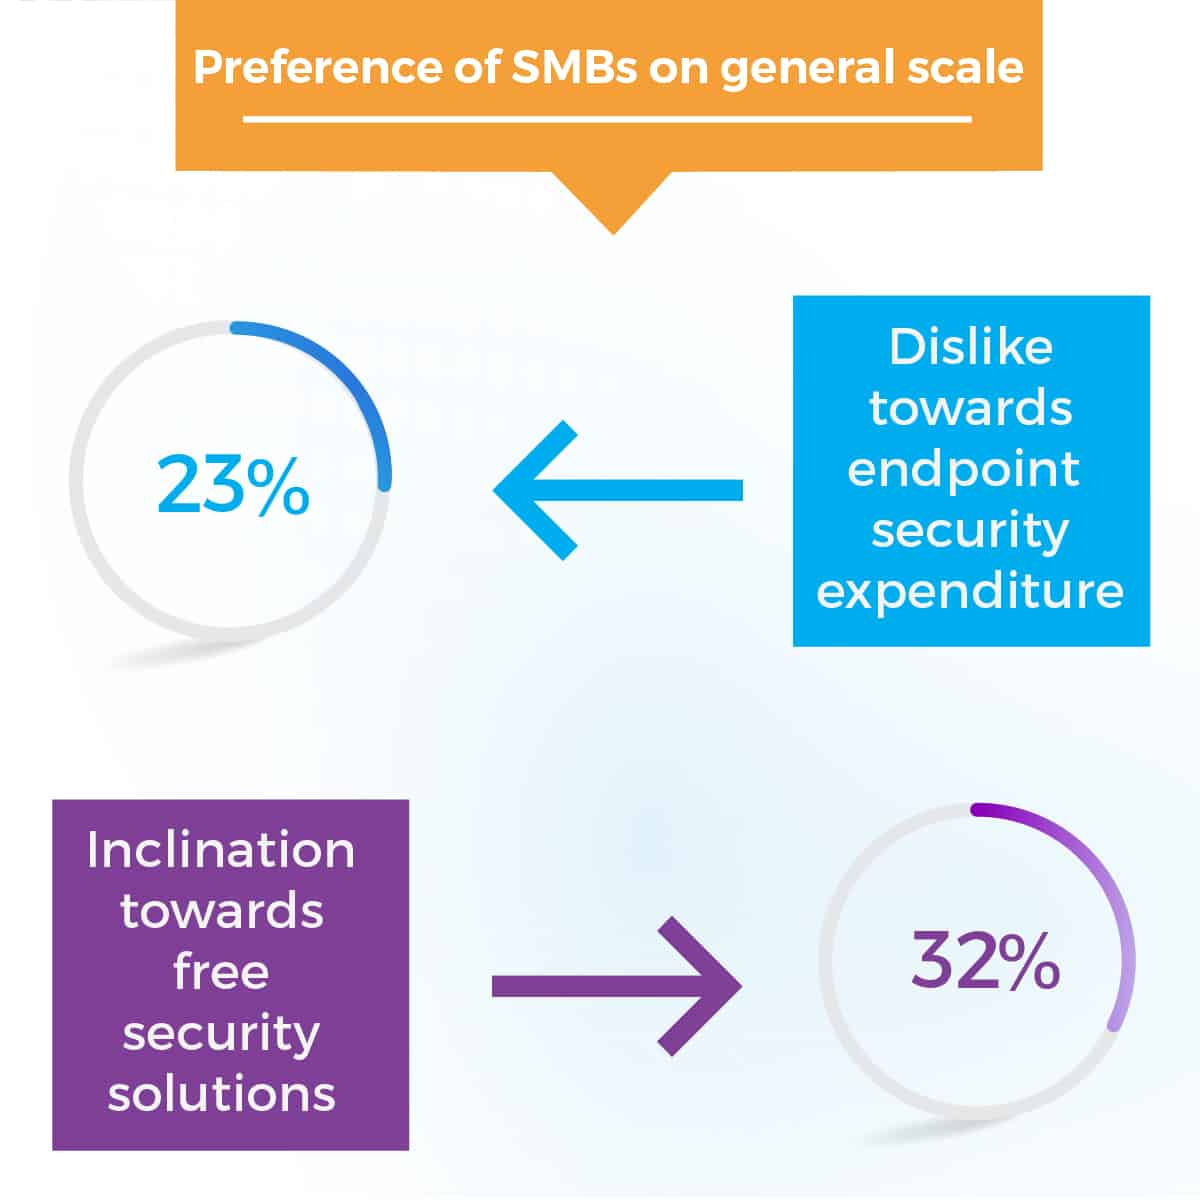 preference of SMBs